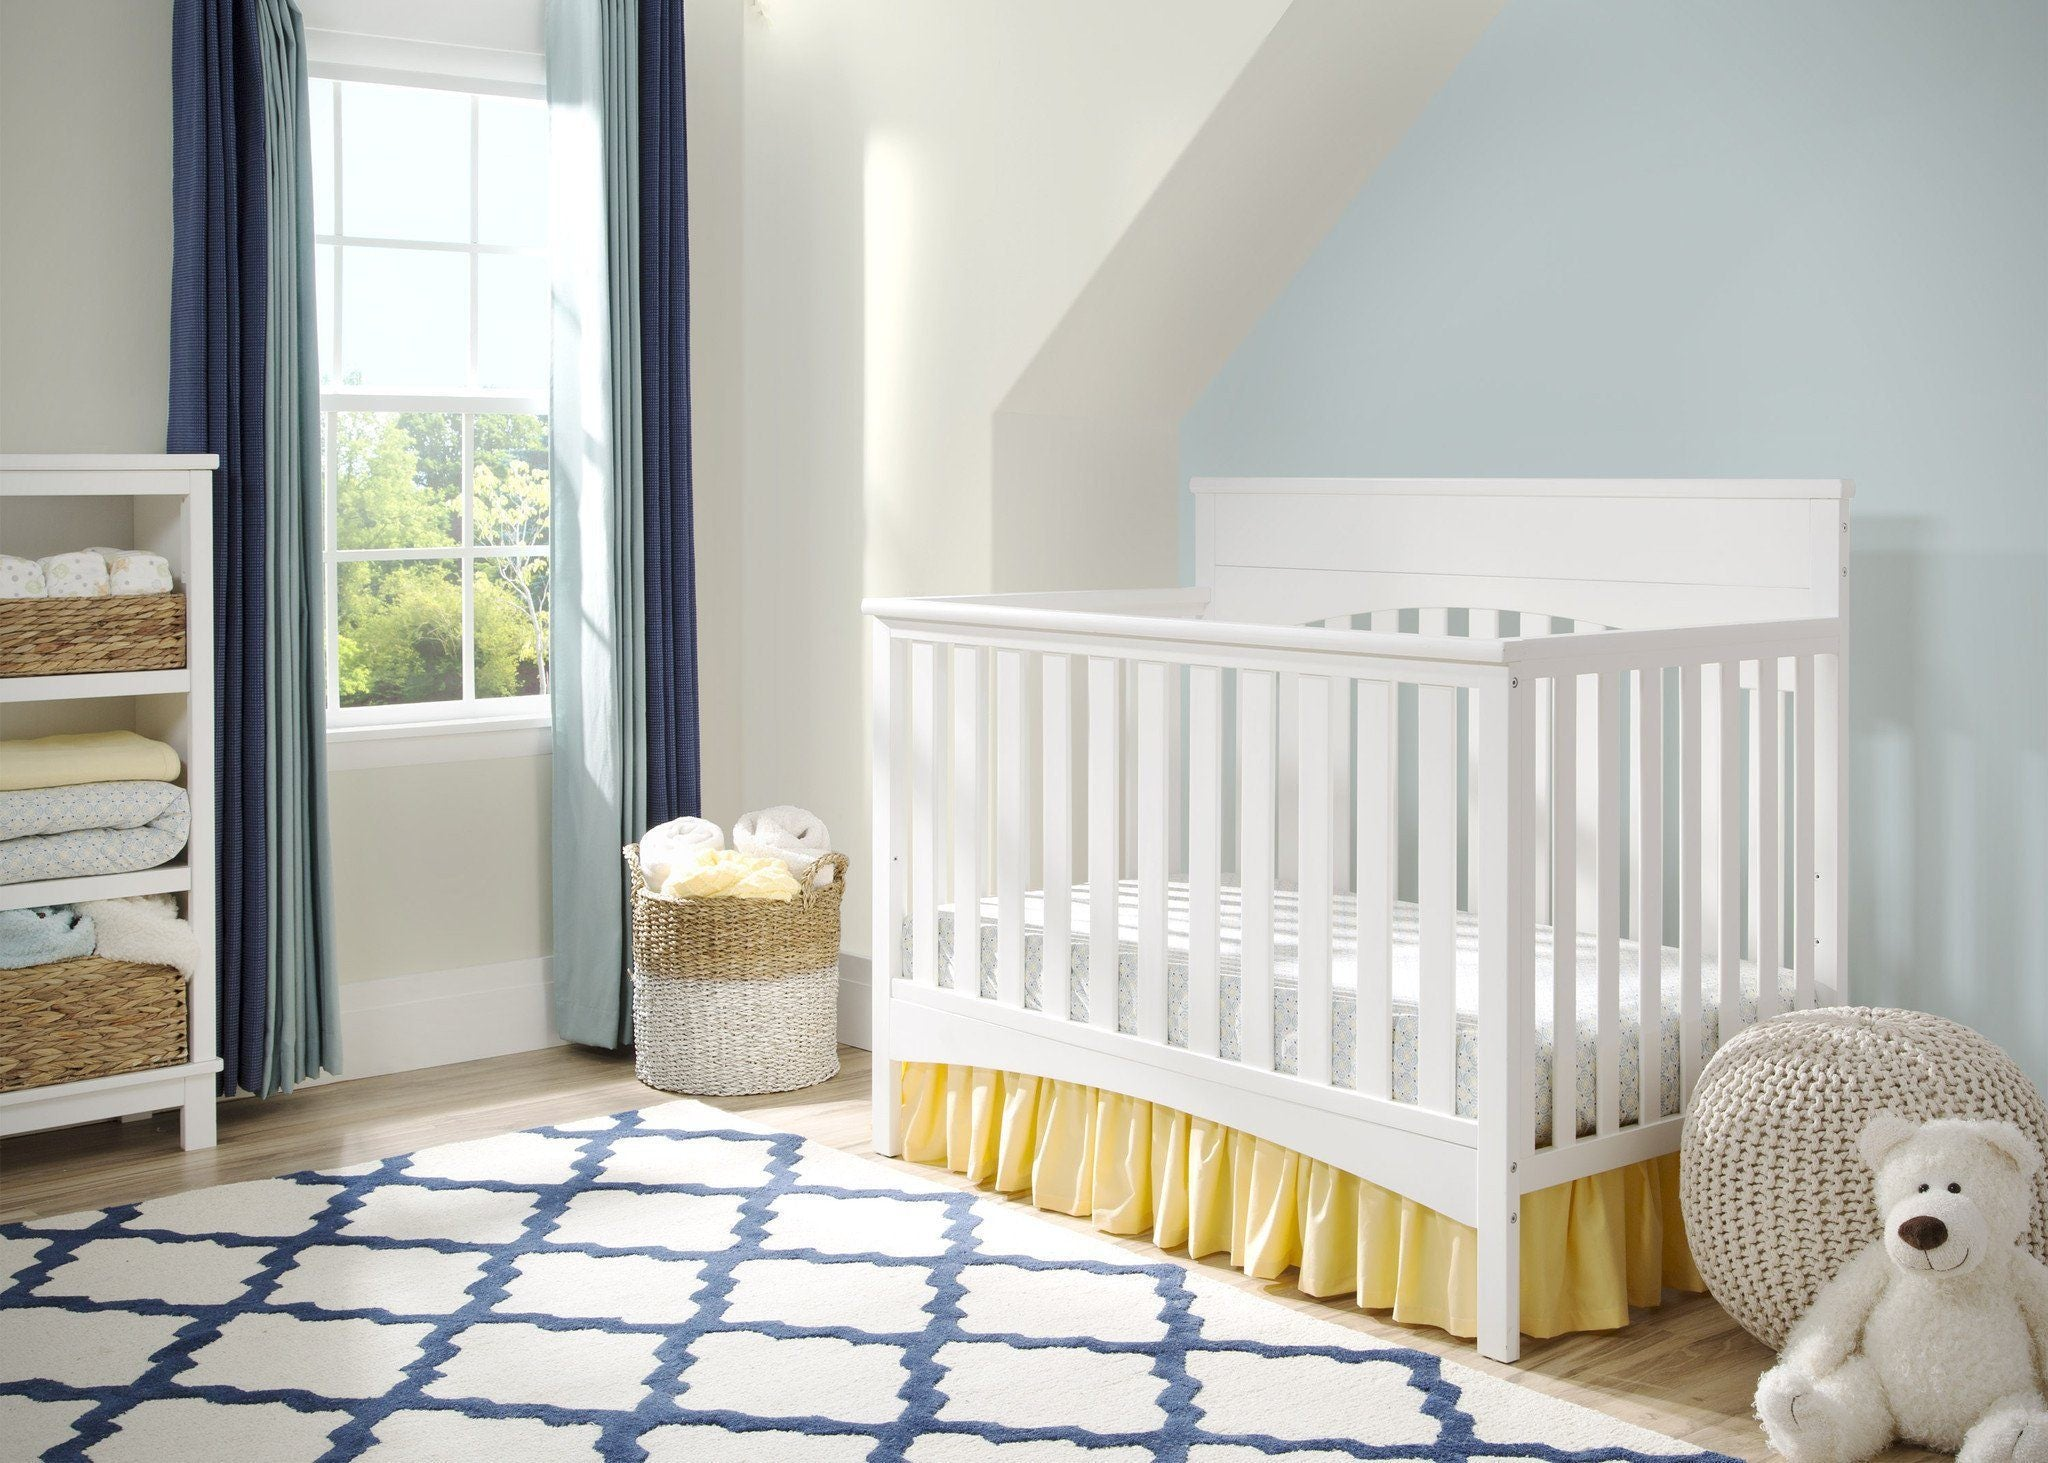 Delta Children White Ambiance (108) Bennington Lifestyle 4-in-1 Crib, Crib Conversion in Setting a1a